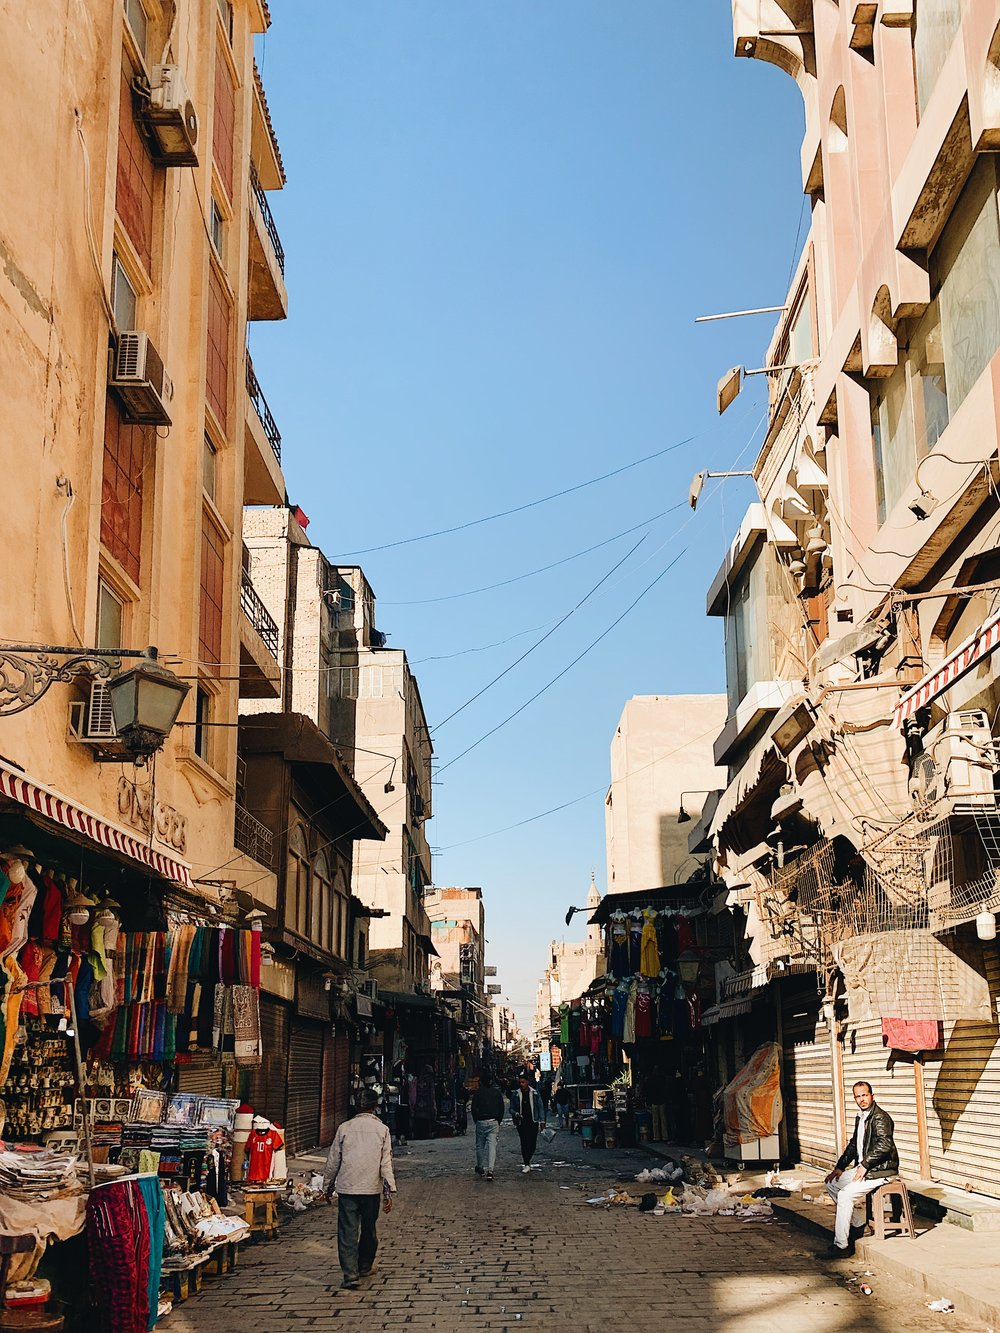 The Bazaars in Cairo, Egypt